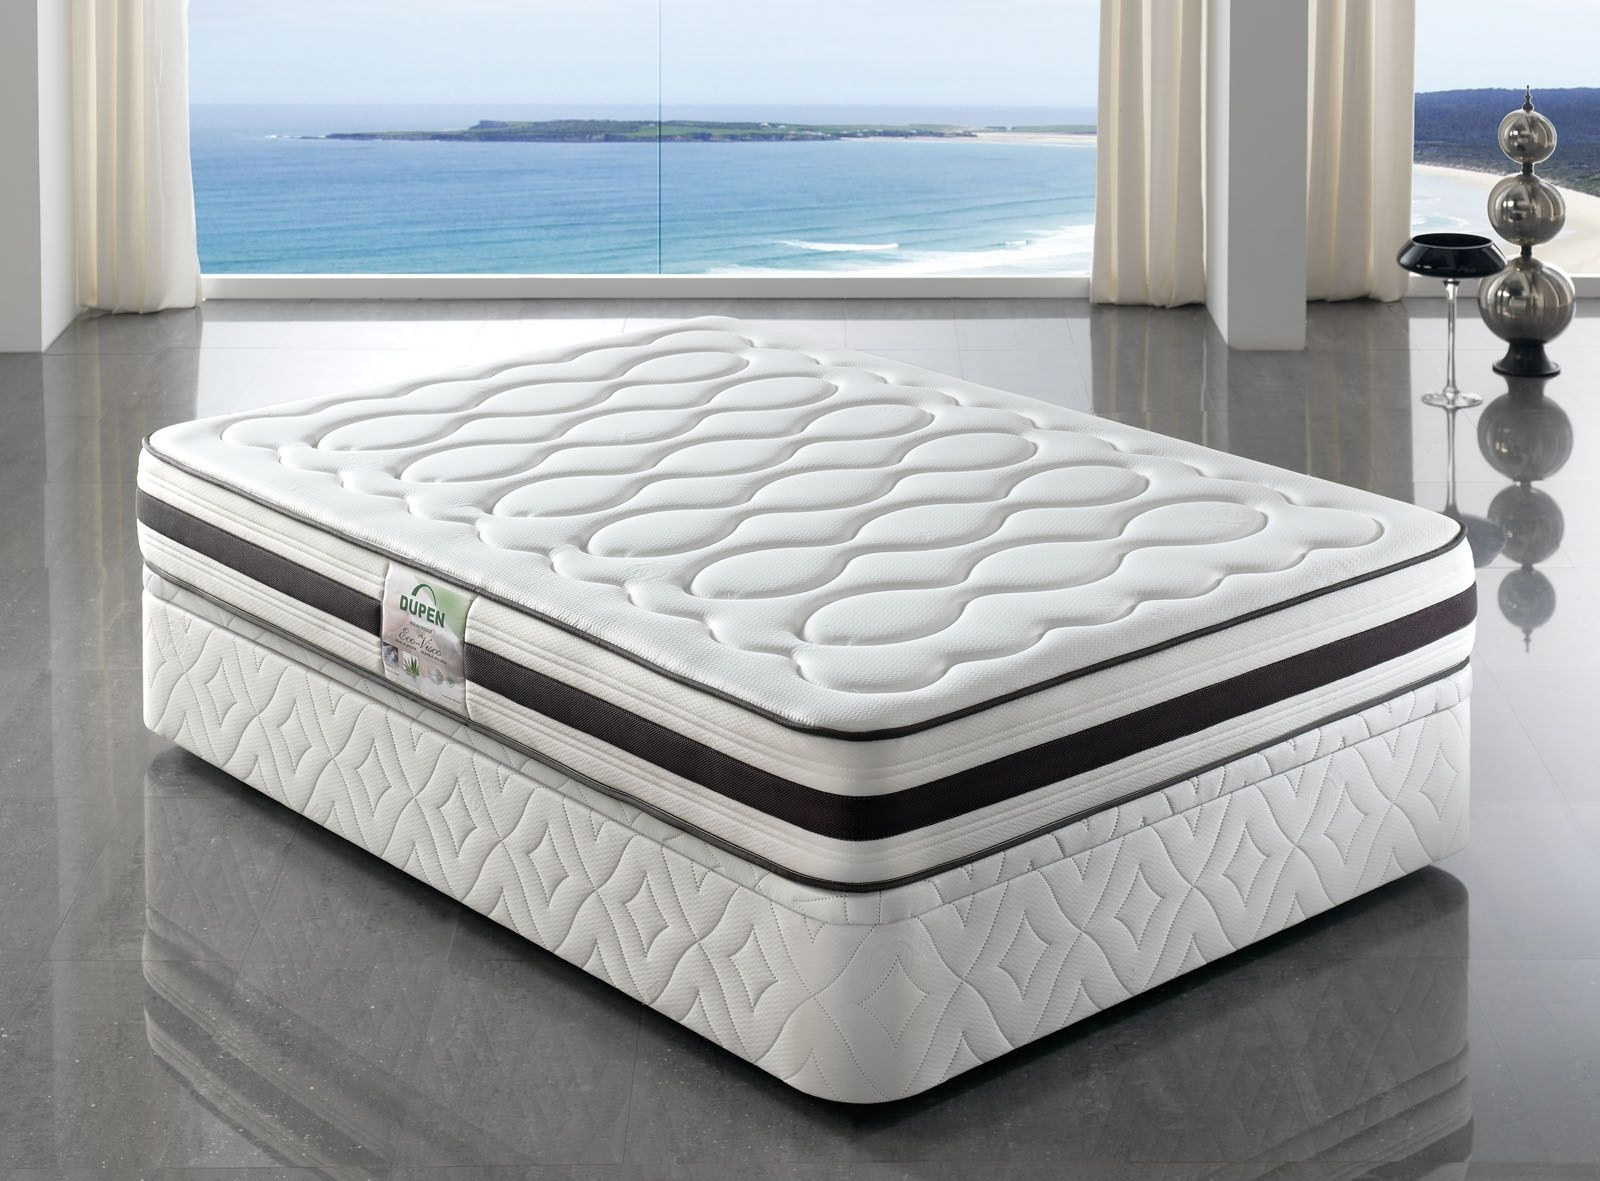 Ratings On Mattresses >> Factors Affecting Quality Of Mattress Mattress Ratings